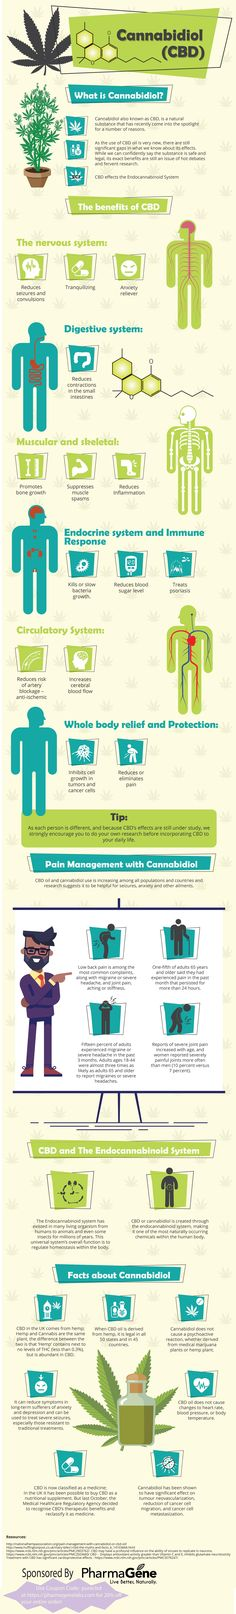 14 Benefits Of CBD (Cannabidiol) - Scientists have found several benefits during studies over the past 20 years. We've dug up several studies from the United States Library Of Medicine, and documented them on this infographic. Find out more at http://nava